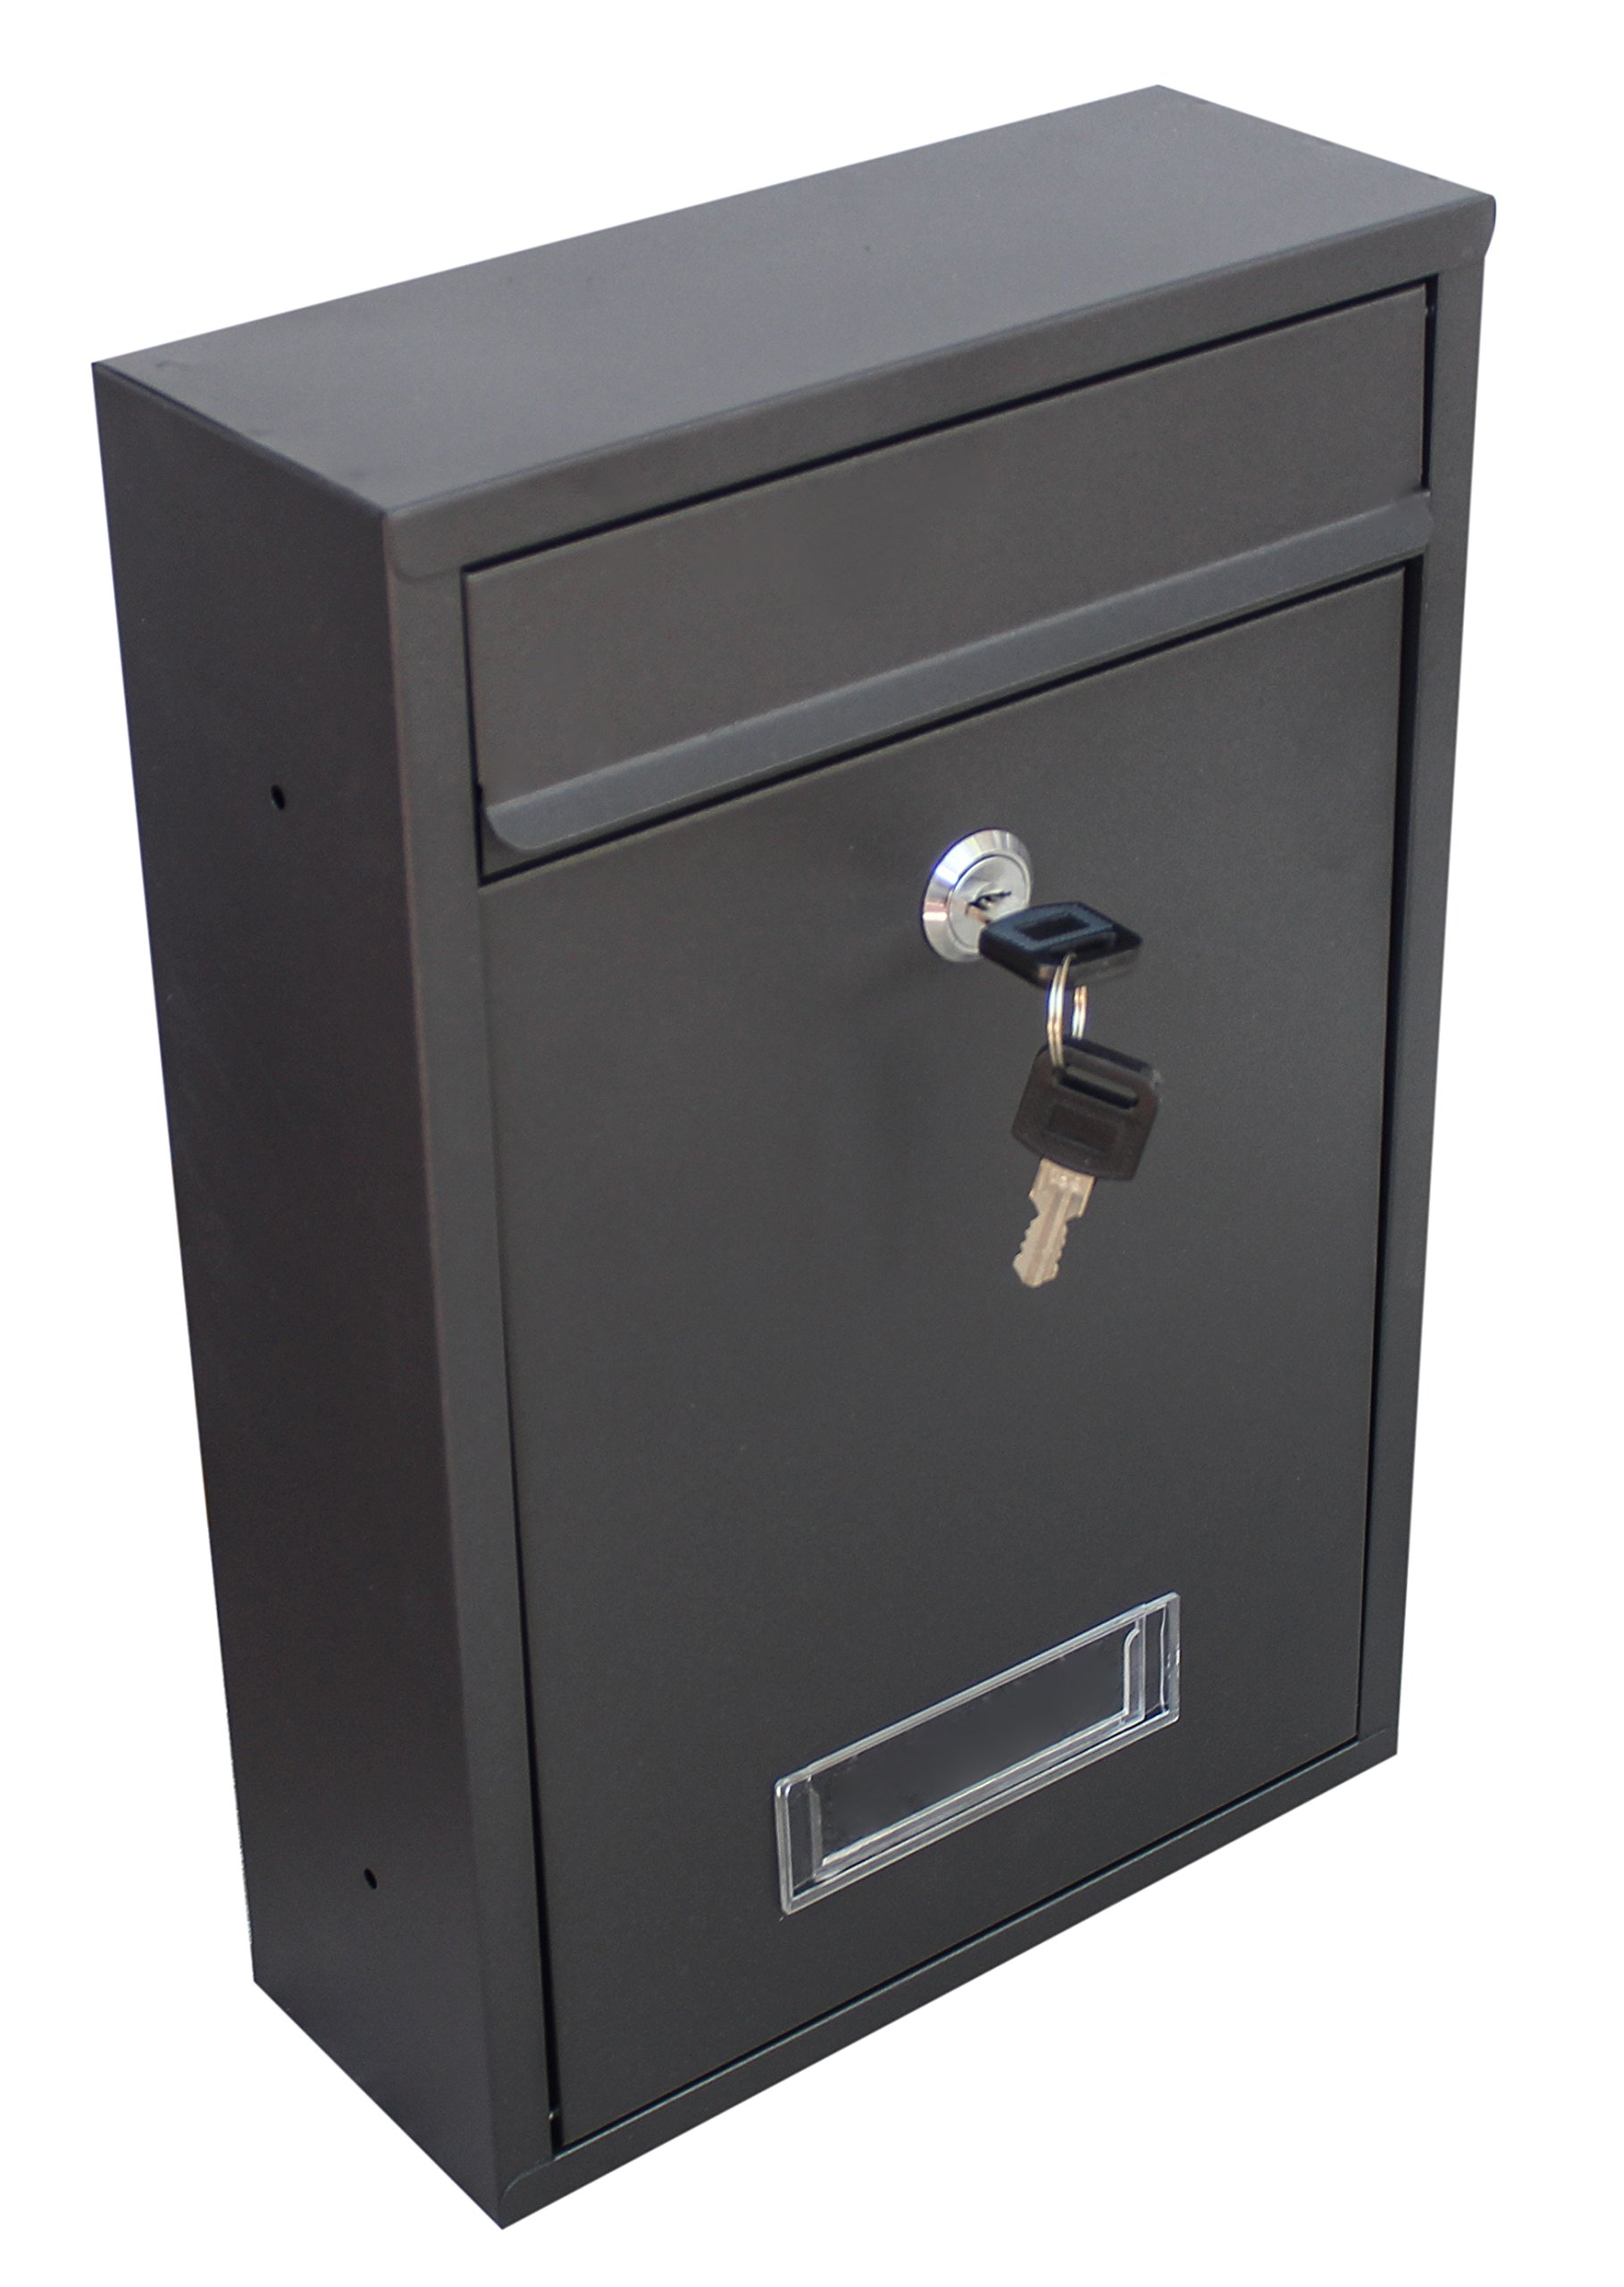 Locking Wall Mounted Mailbox - Security Mail Box Locking with Key - Black Aluminum - Residential/Commercial Letter Box